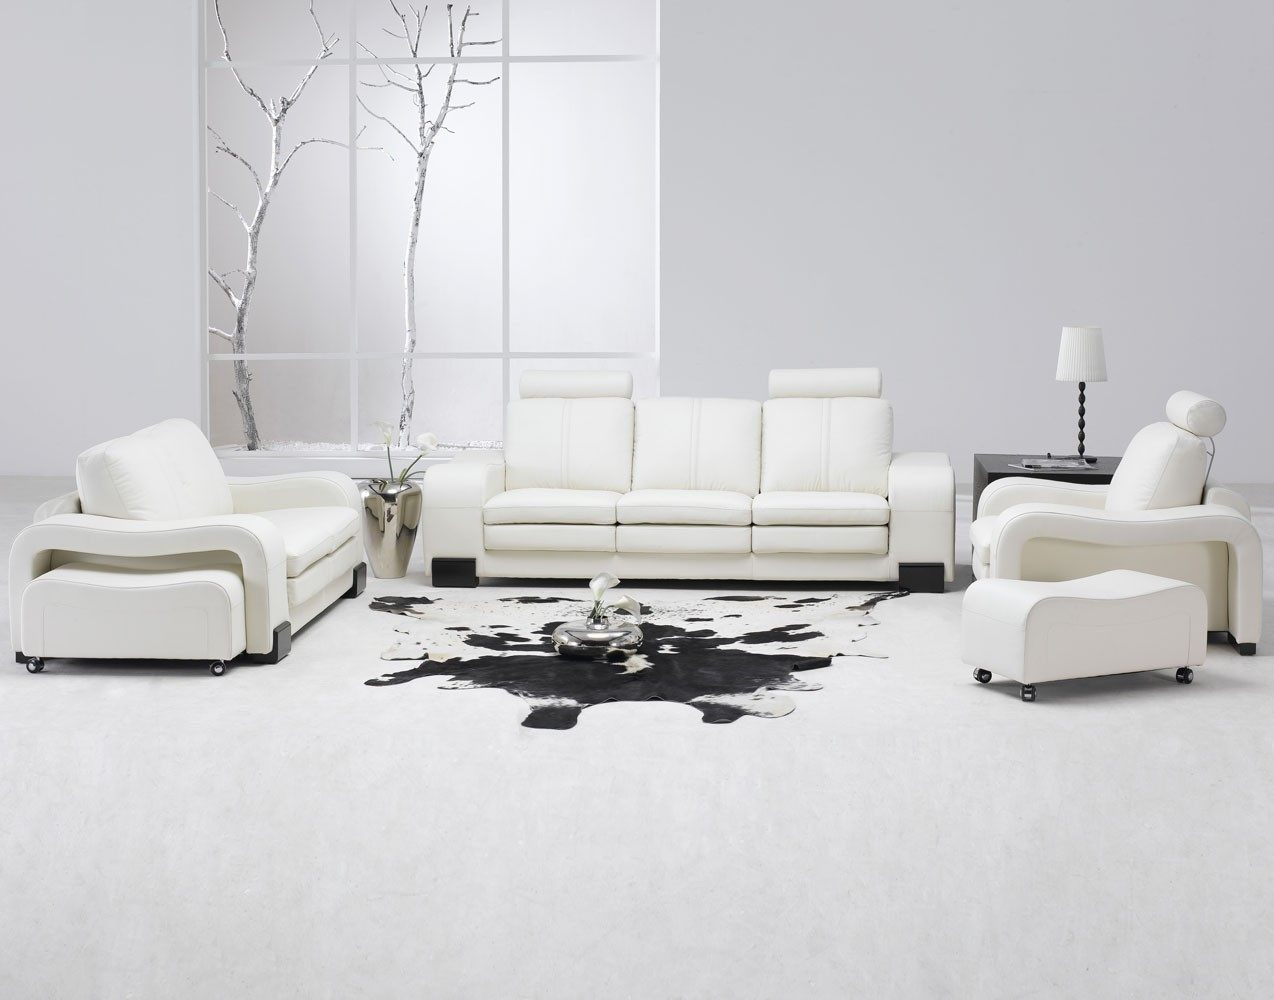 decoracao branca sala:Modern White Living Room